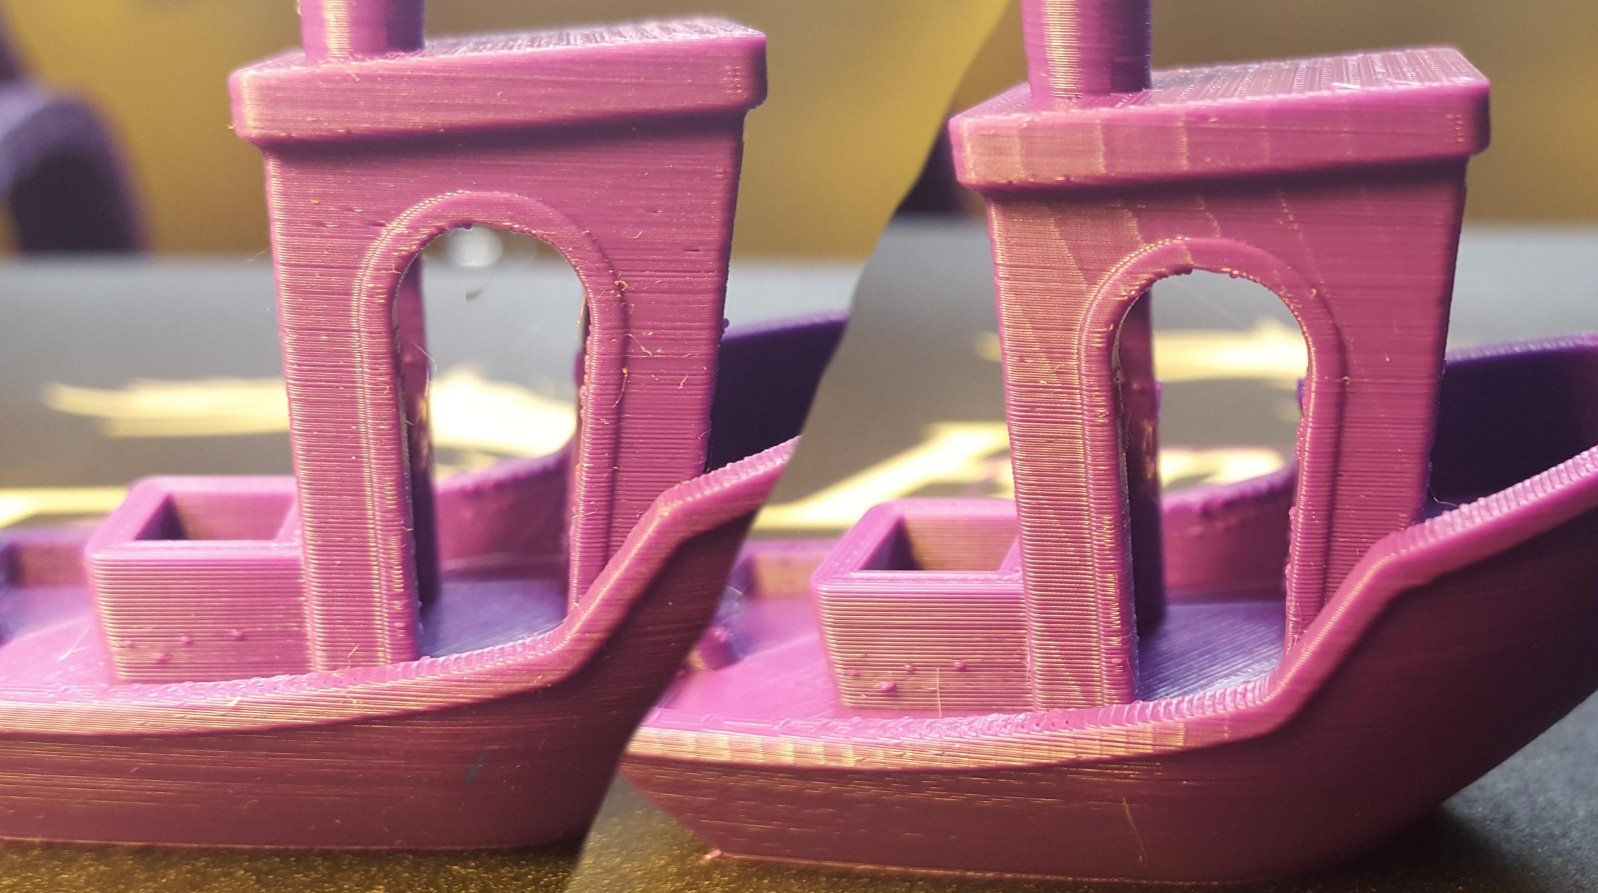 TL Smoother: Should I Add One to My 3D Printer? | All3DP